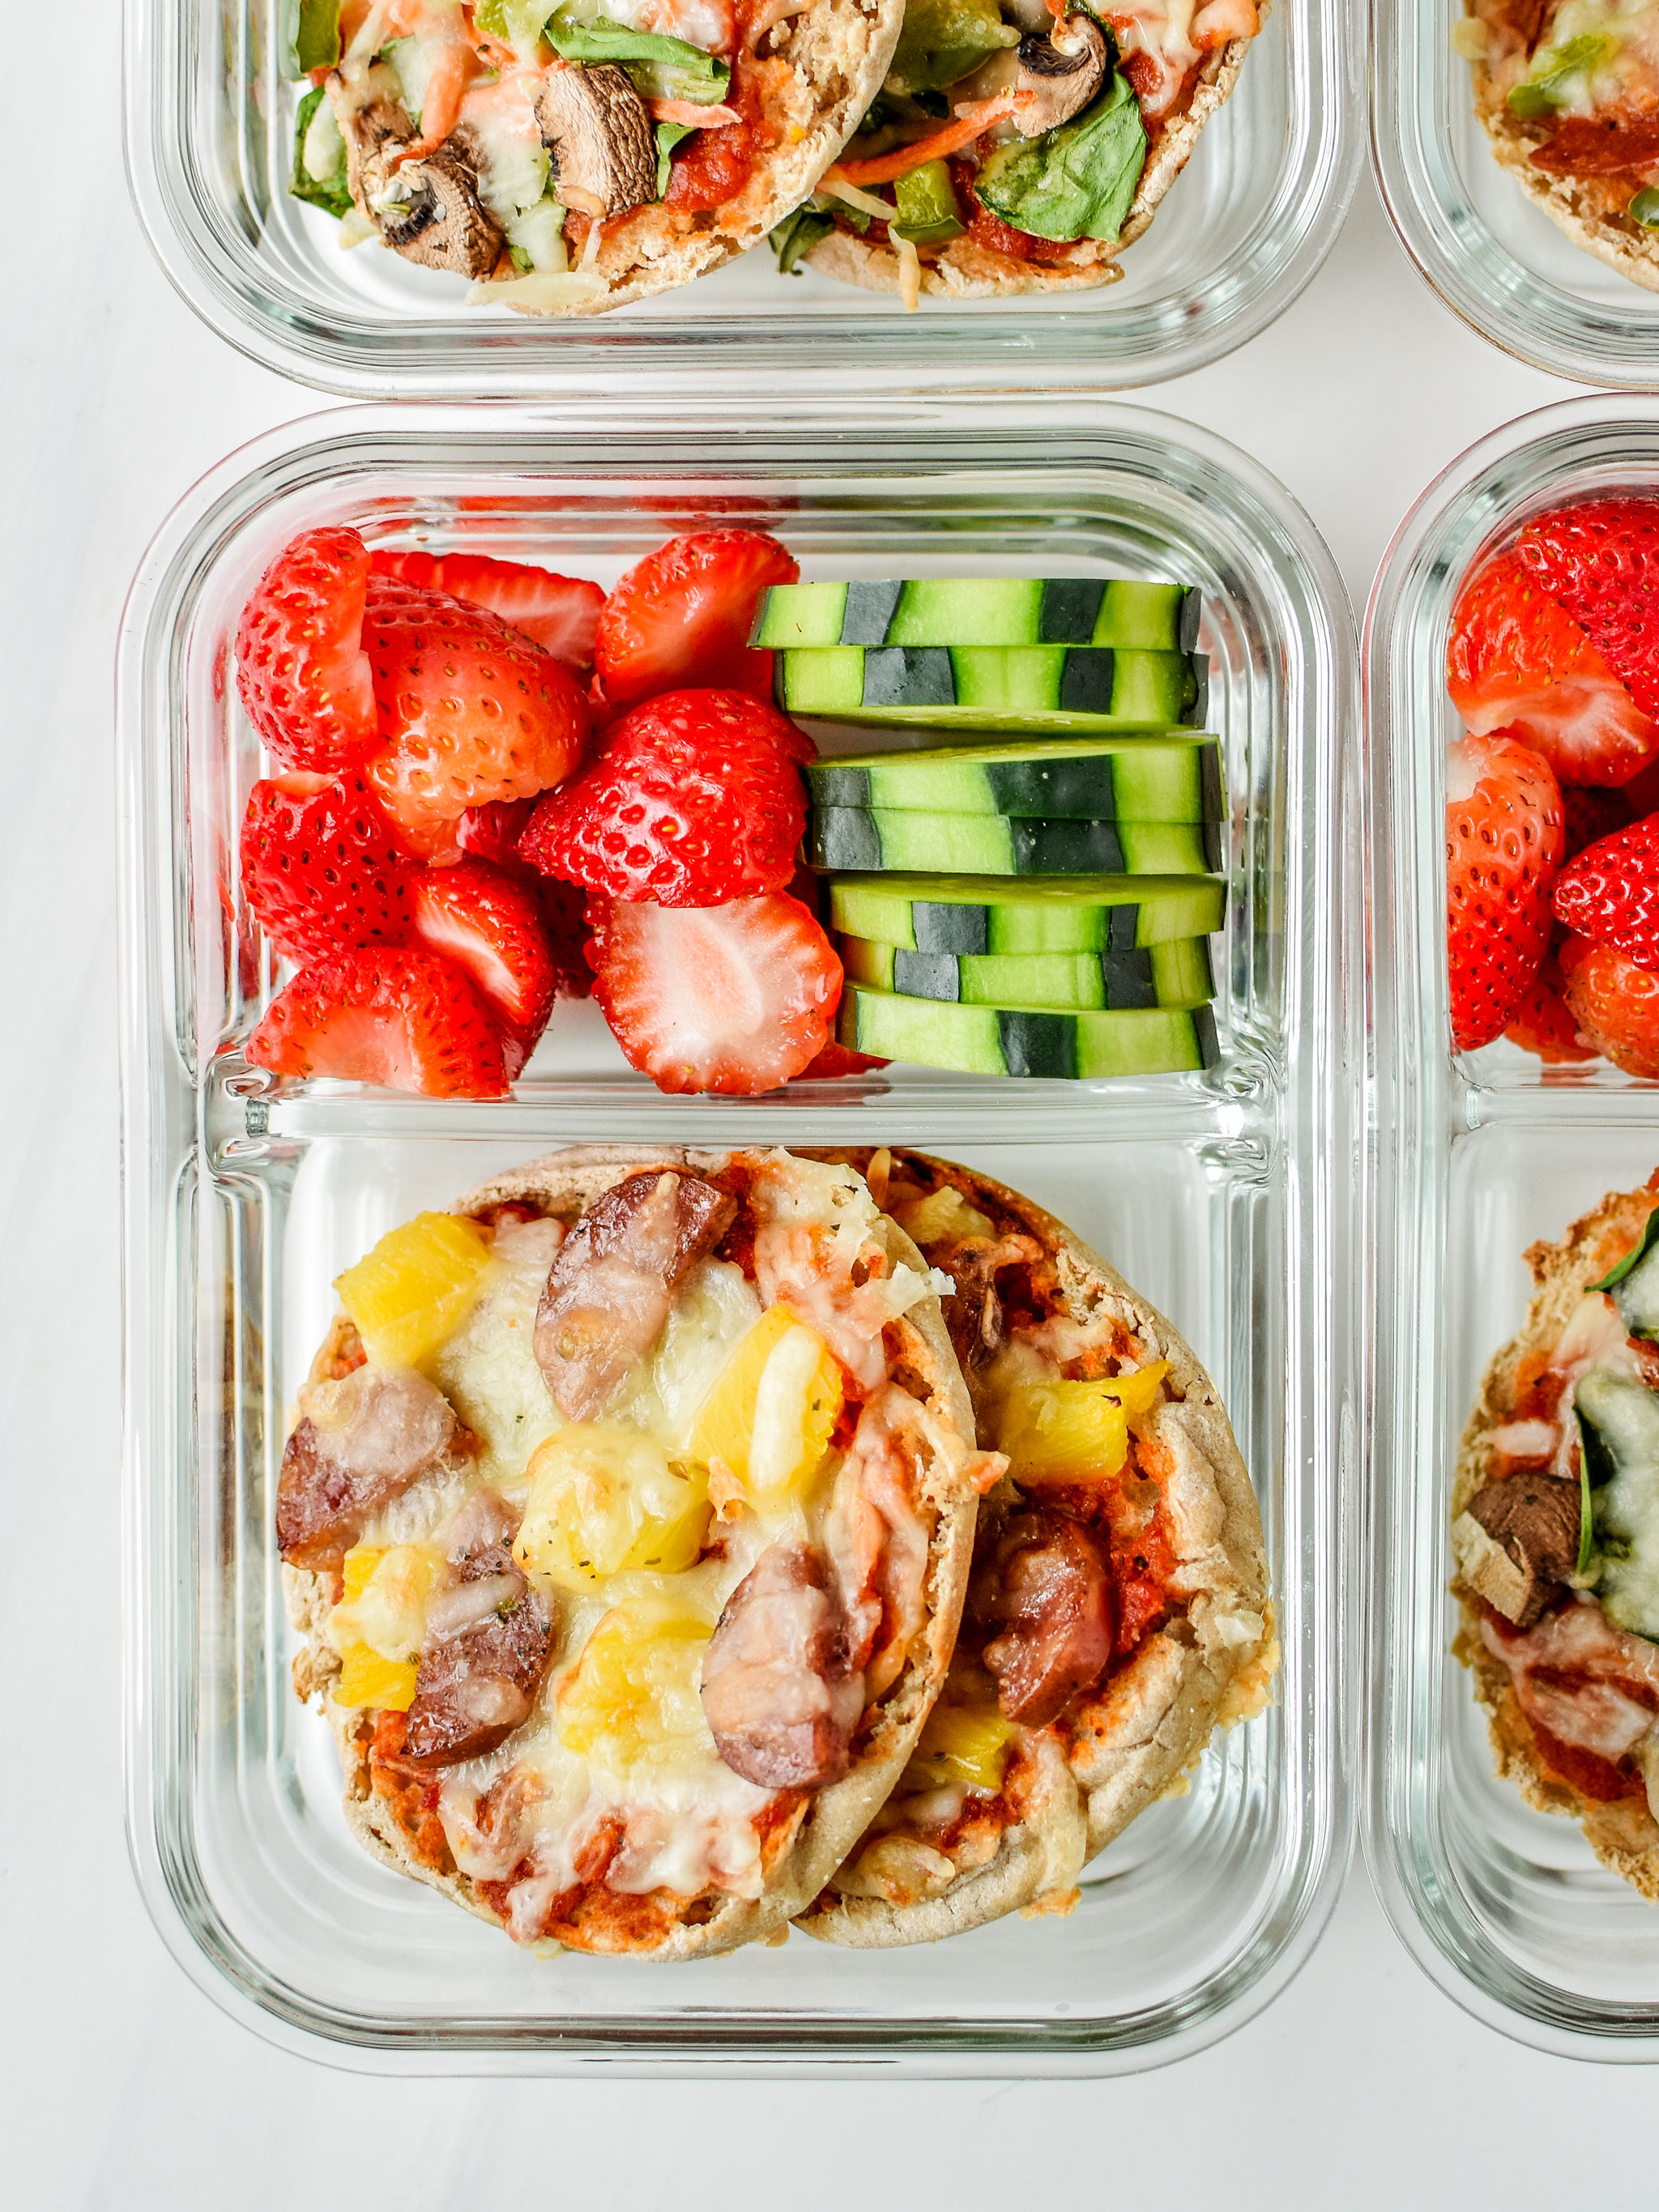 English muffin mini pizzas meal prep - meaty pineapple pictured with fresh cut cucumbers and strawberries